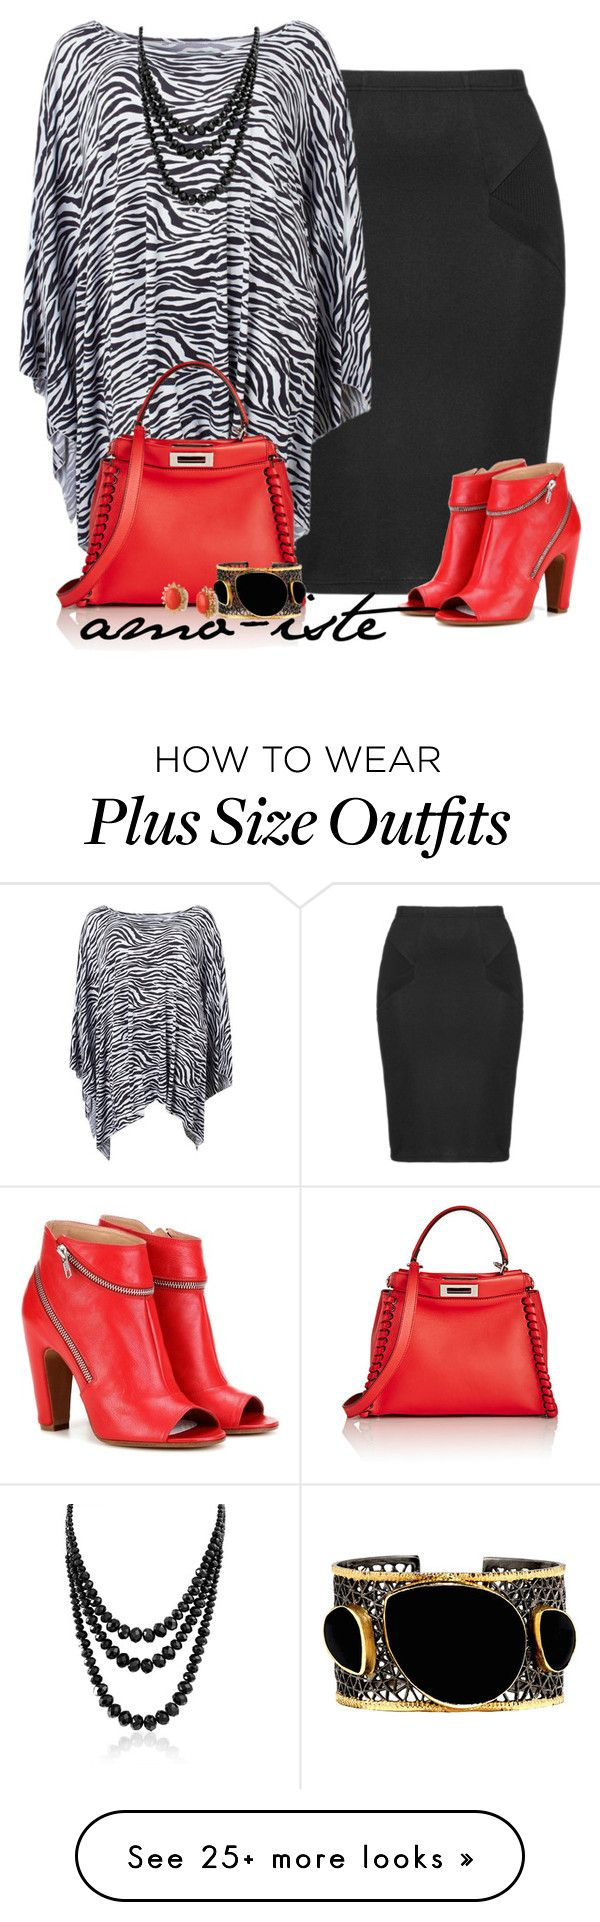 """Zebra Print - Plus Size"" by amo-iste on Polyvore featuring Zizzi, Fendi, Mela Artisans, Maison Margiela, Bling Jewelry and Lele Sadoughi"